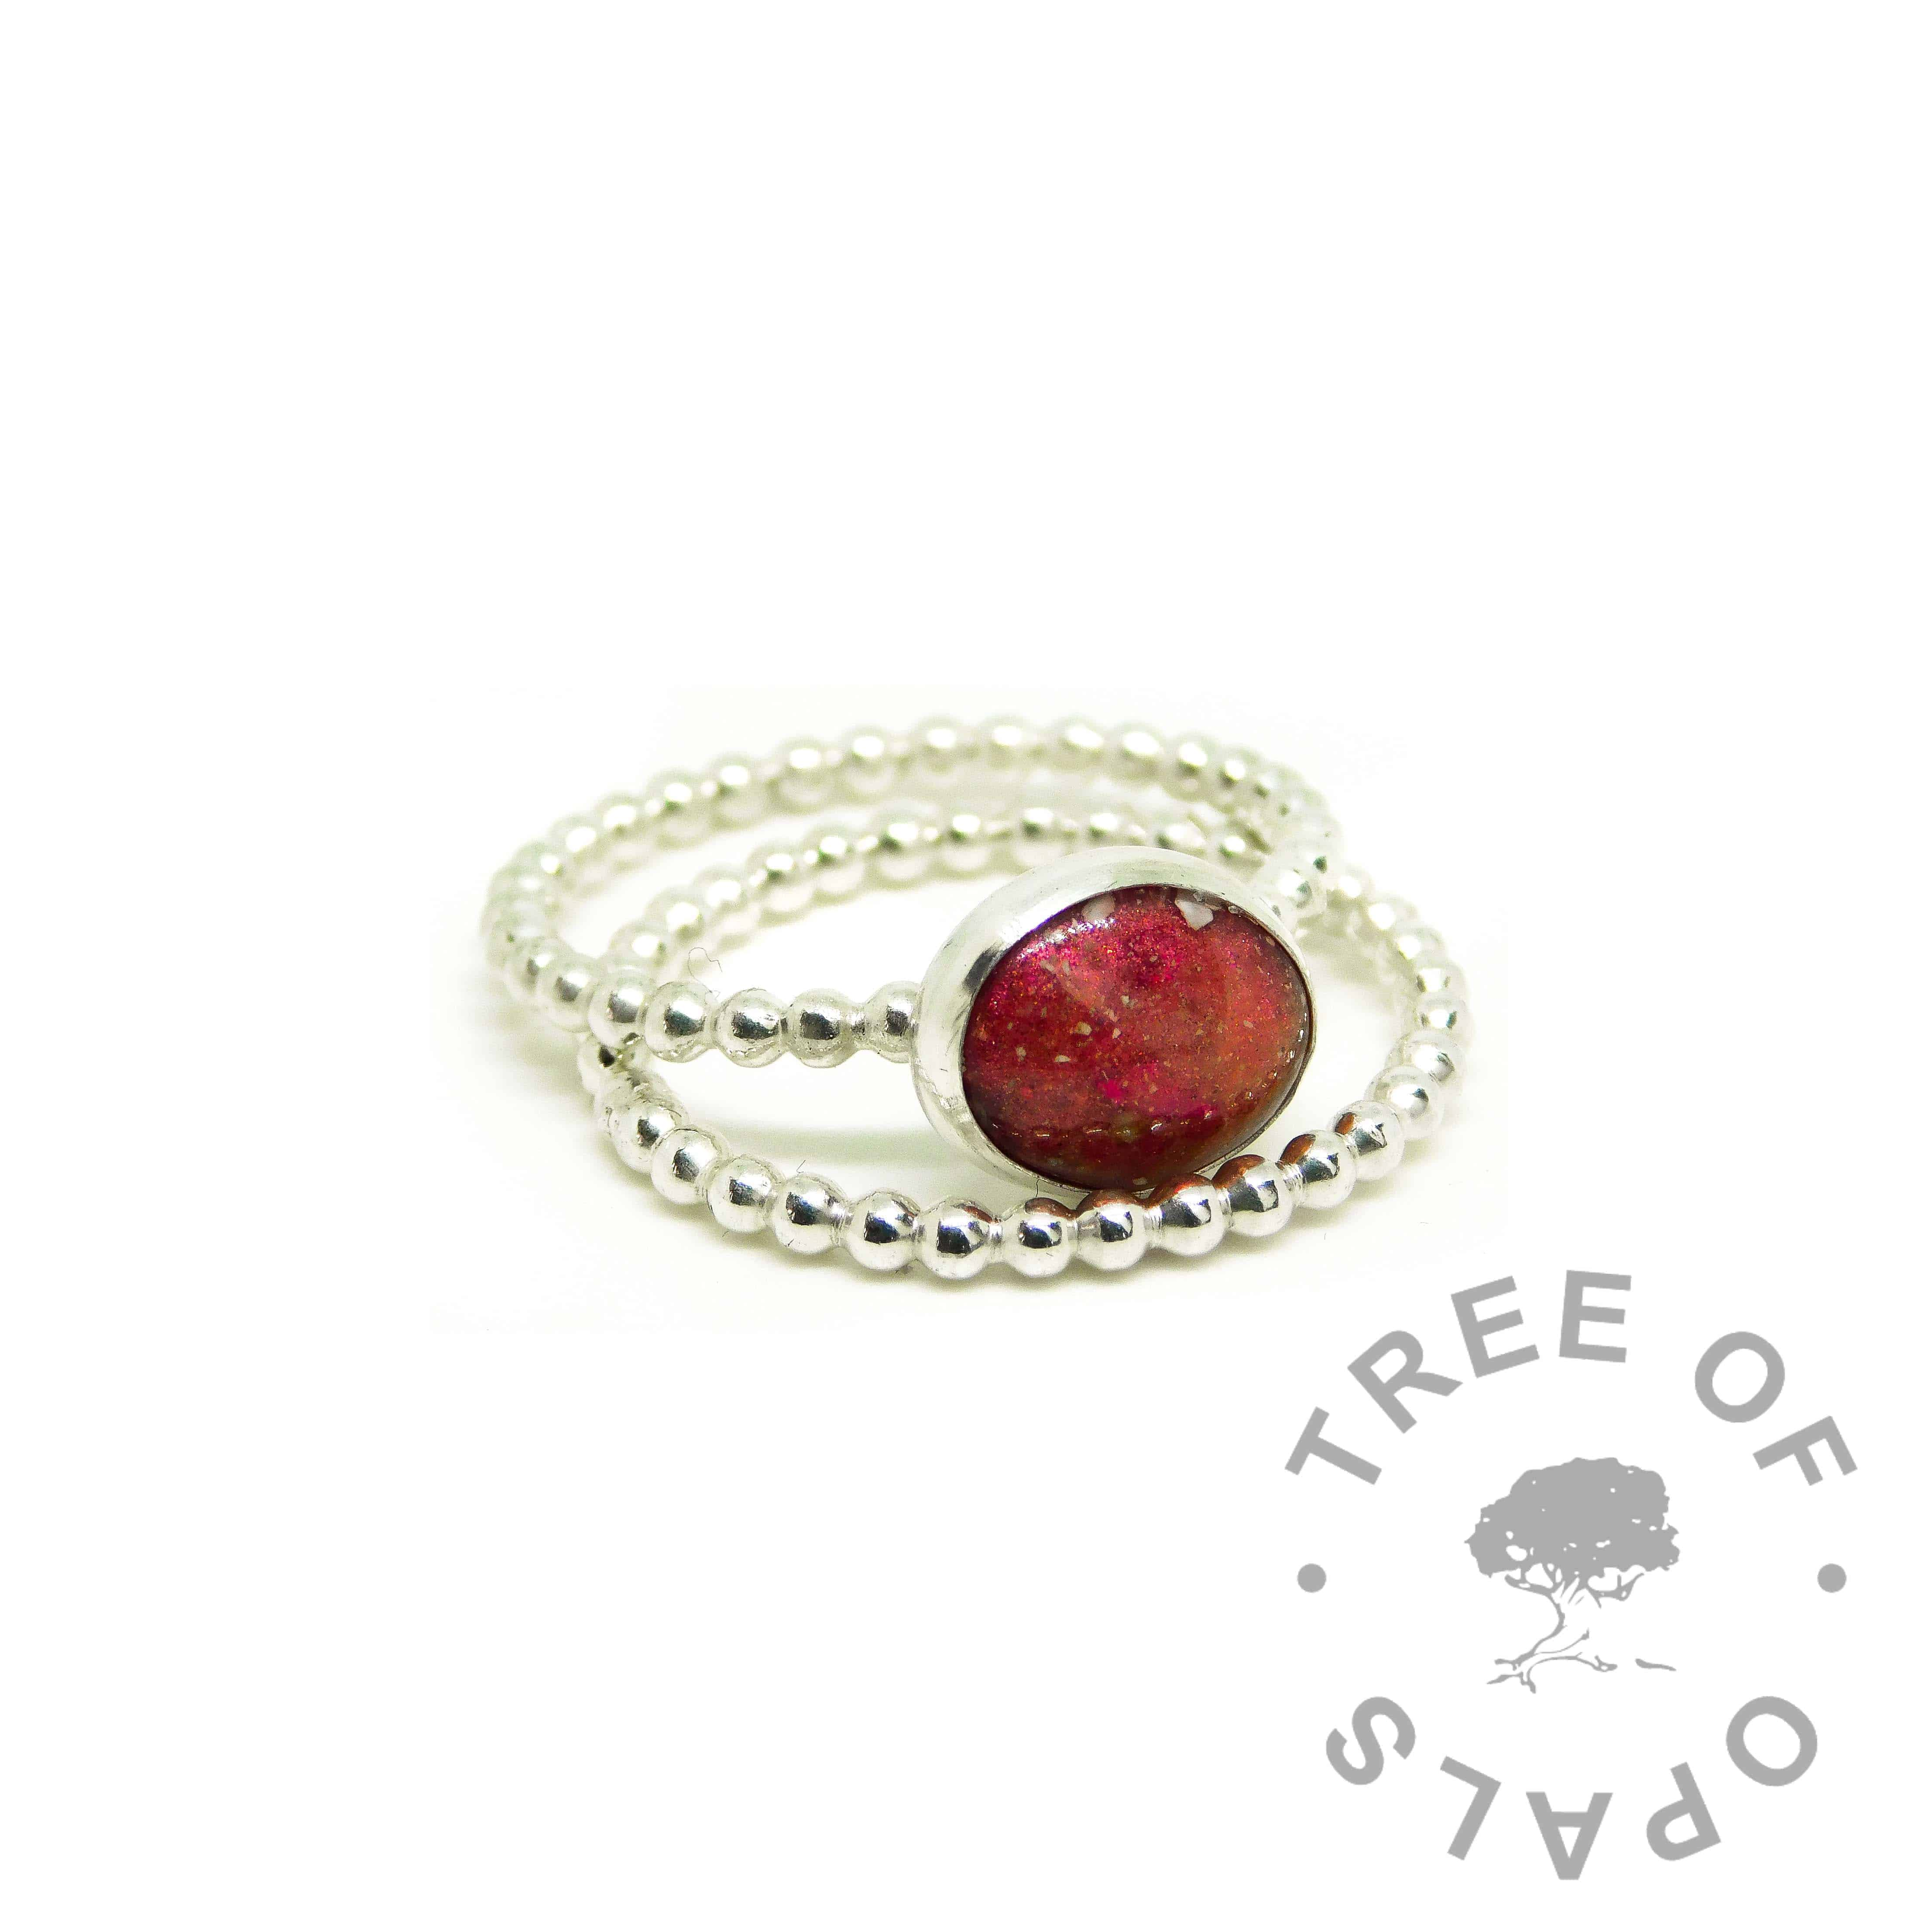 red ashes ring, dragon's blood red resin sparkle mix, bubble wire Argentium silver band. Shown with a bubble wire slim stacking band